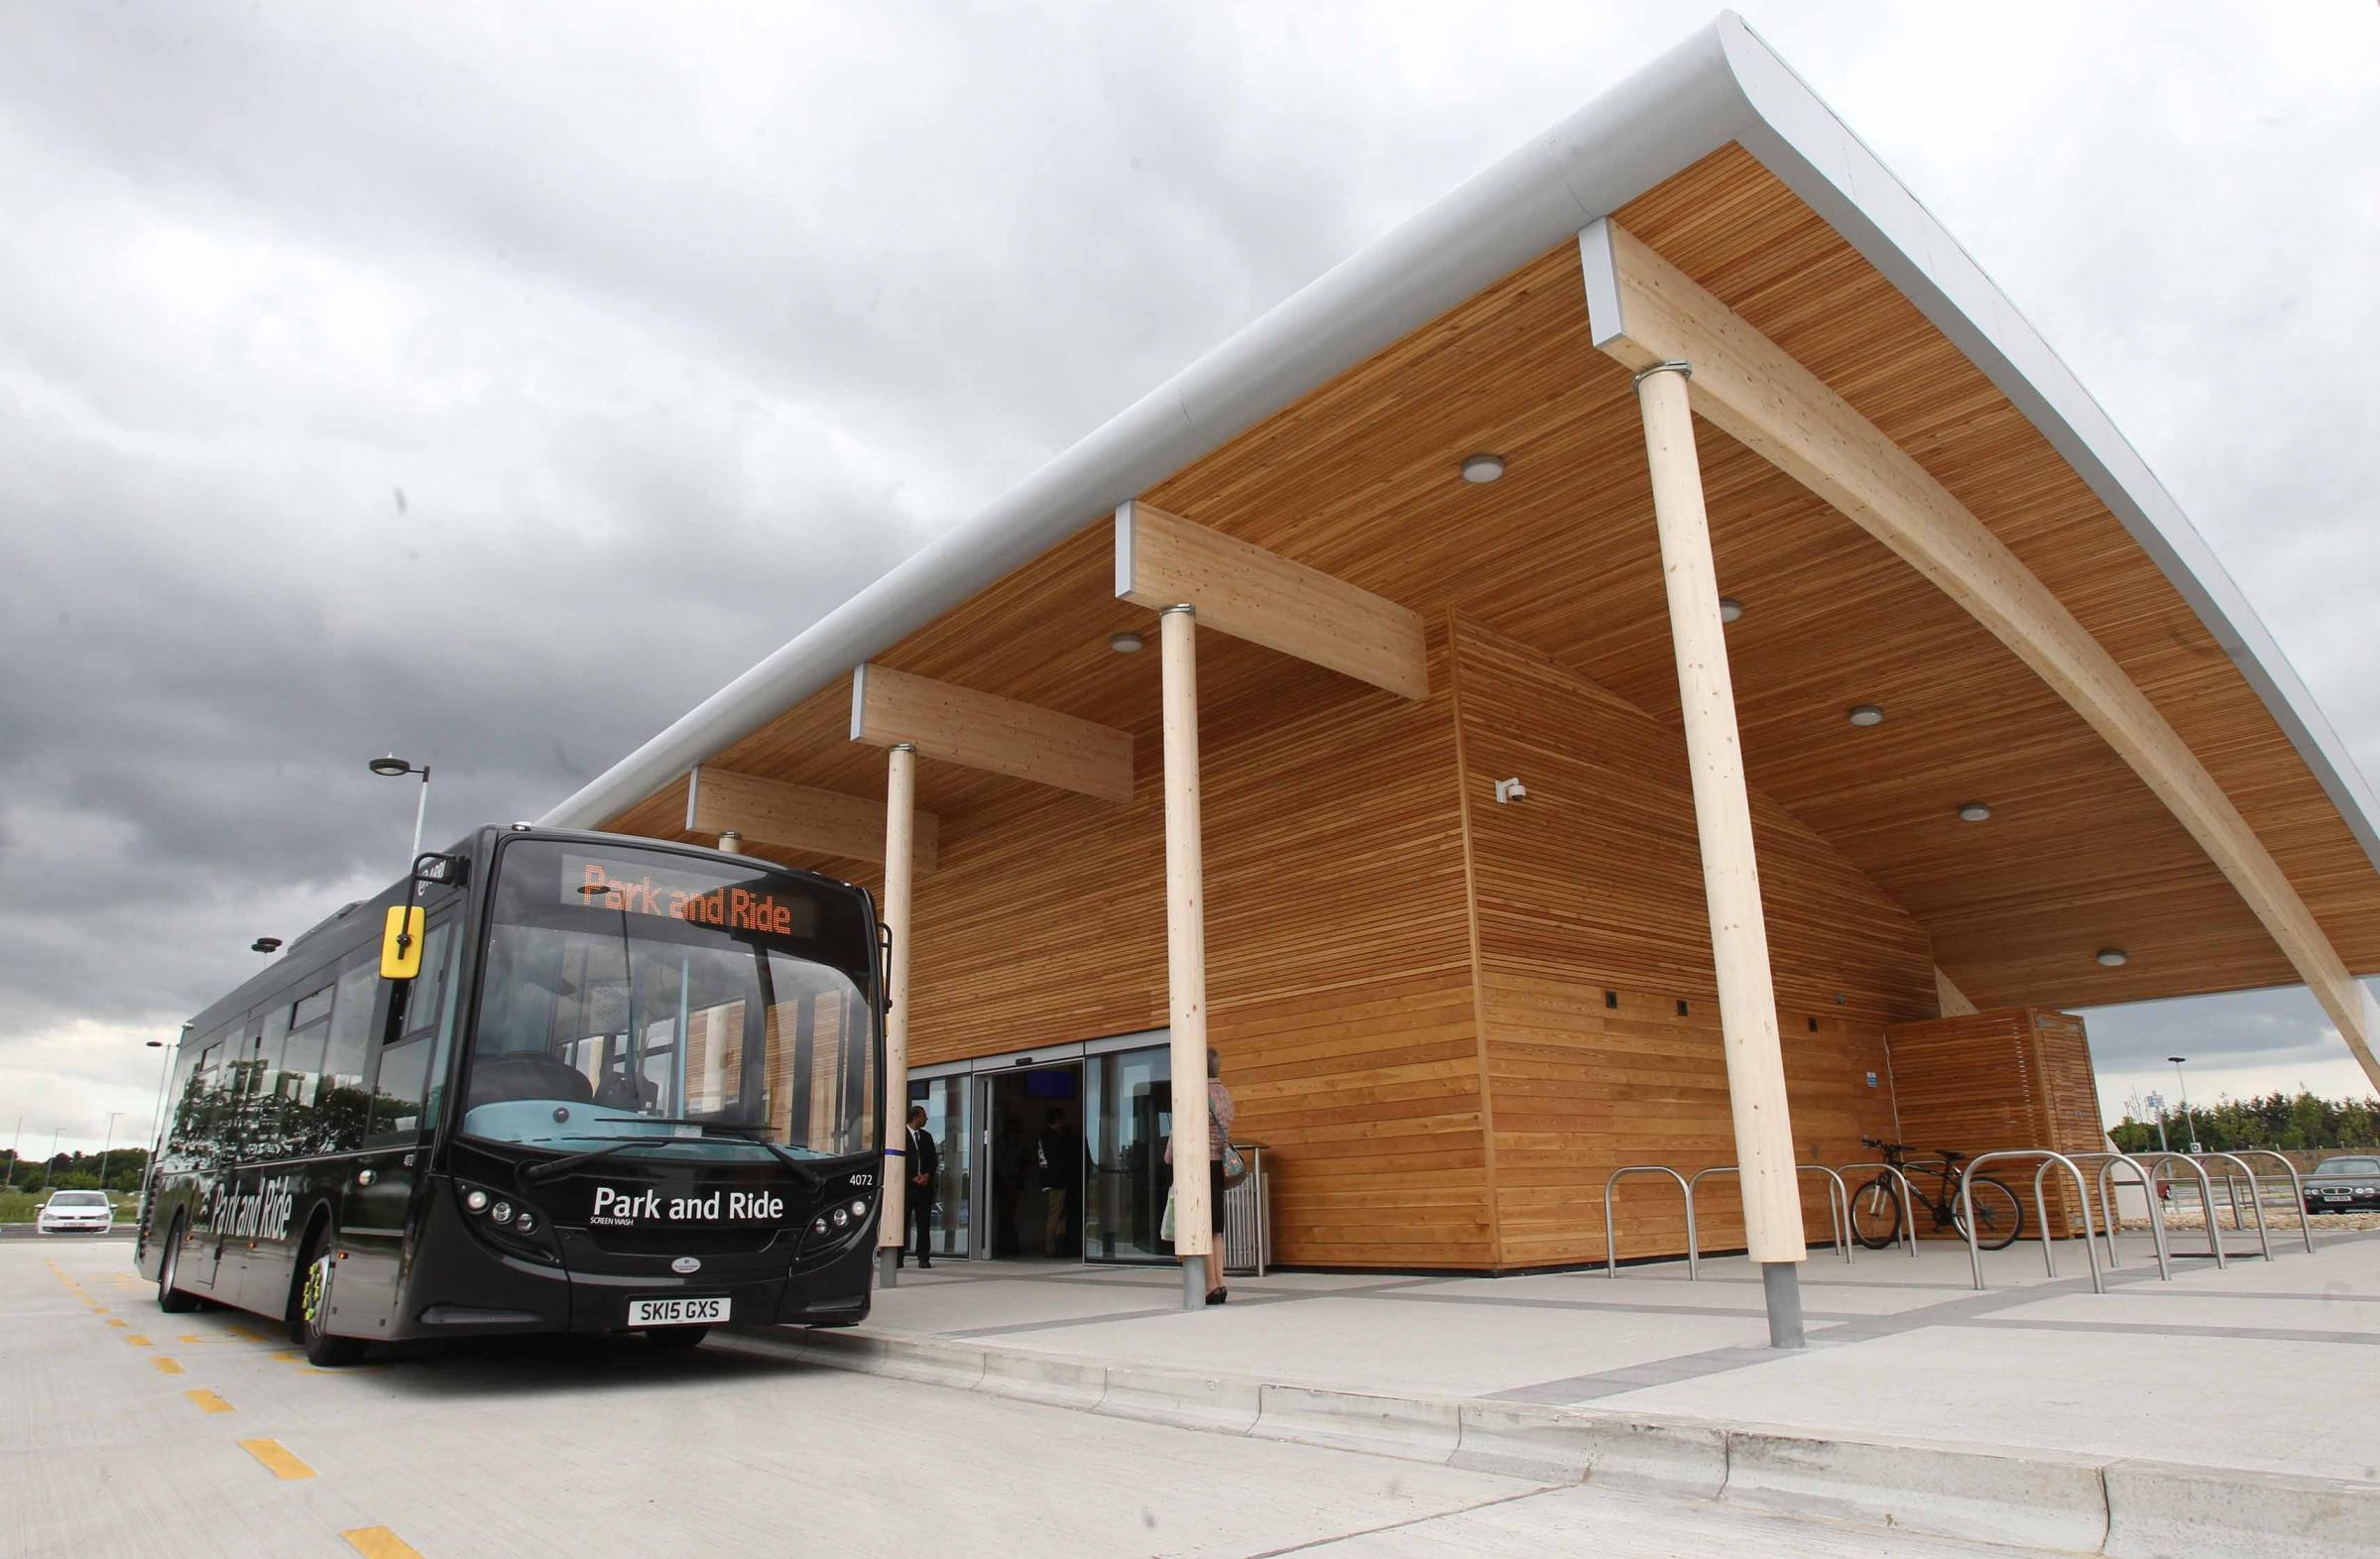 Stansted Car Village Shuttle Colchester Park And Ride And Stansted Could Still Be Linked